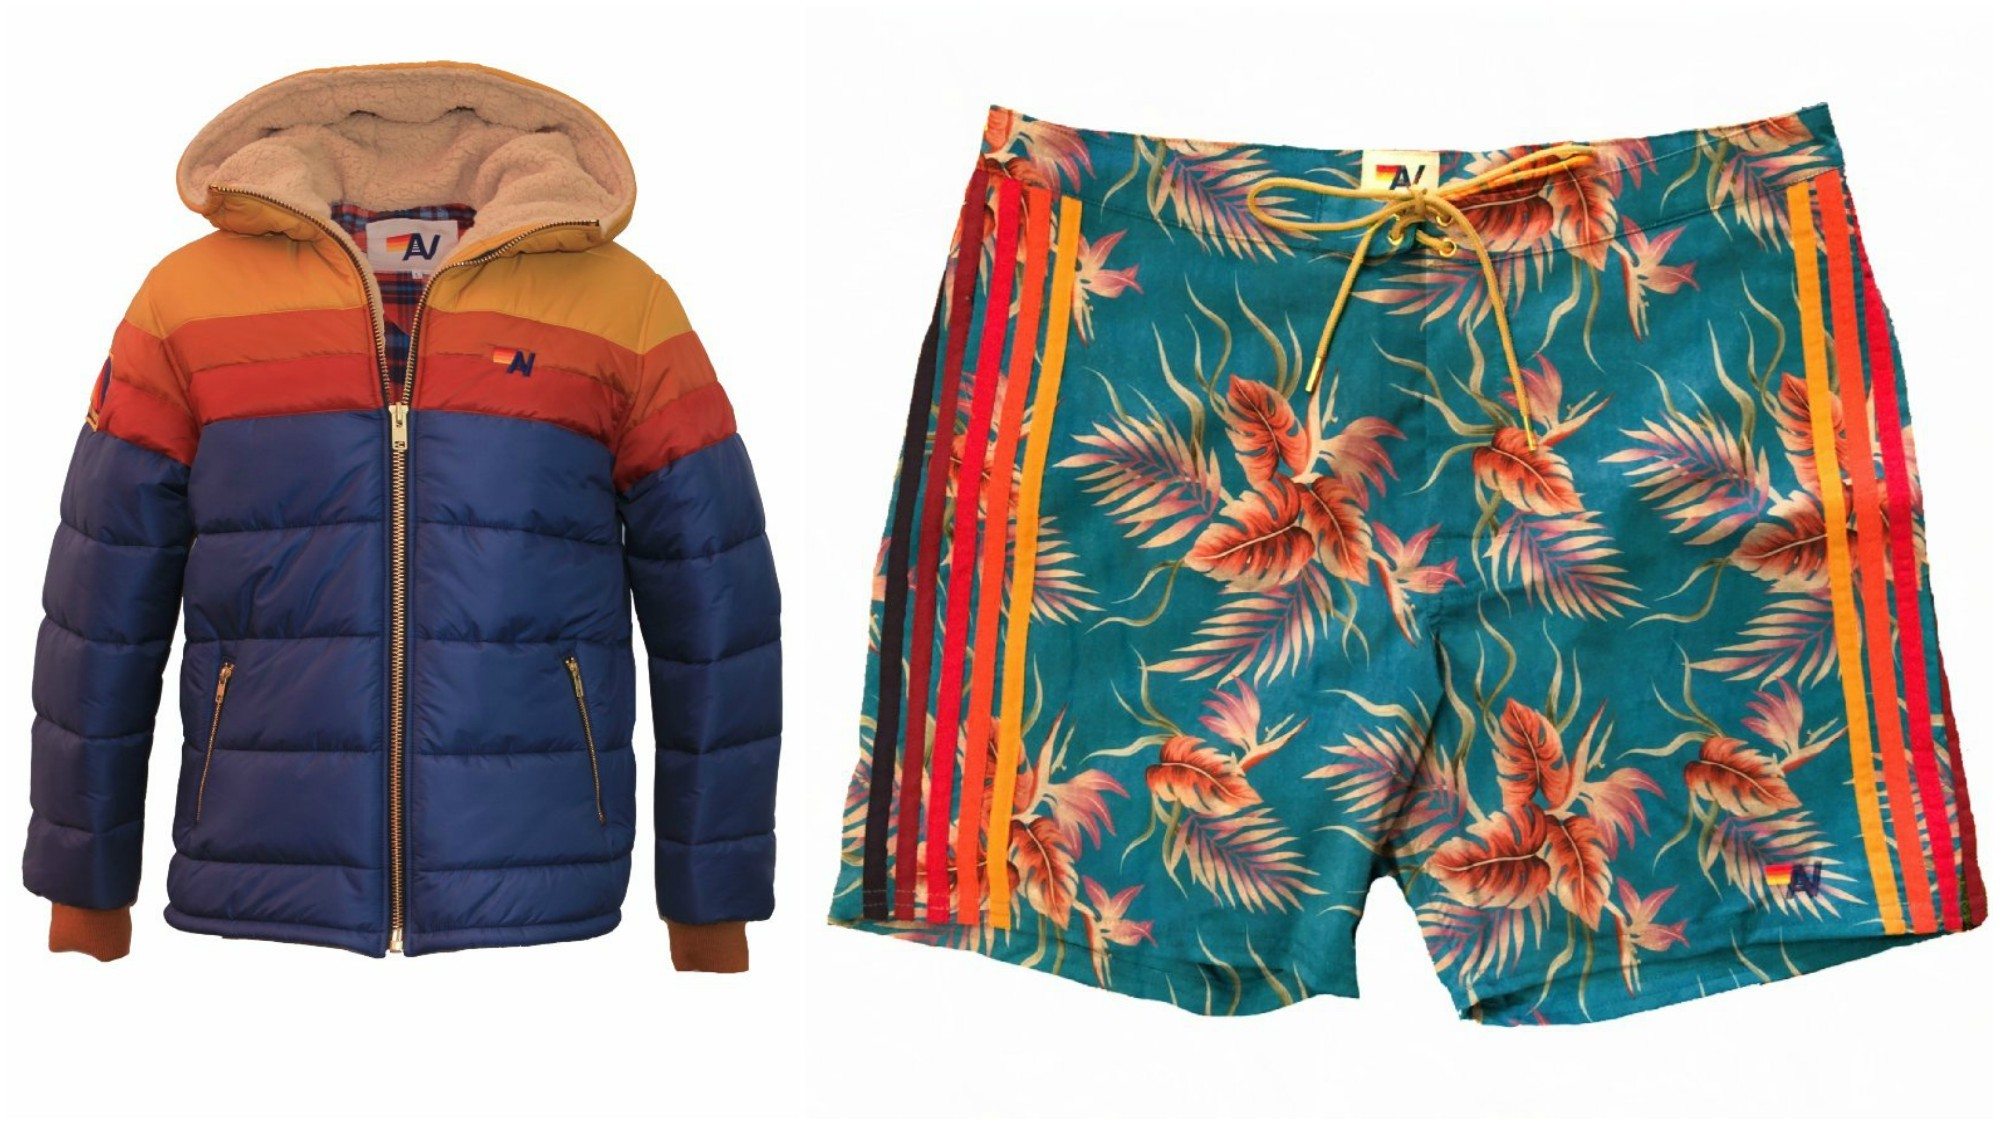 Aviator Nation unisex hooded Trekker puffer jacket with shearling lining, $649, and Aviator Nation men's Kauai Stripe board shorts, $159.99.